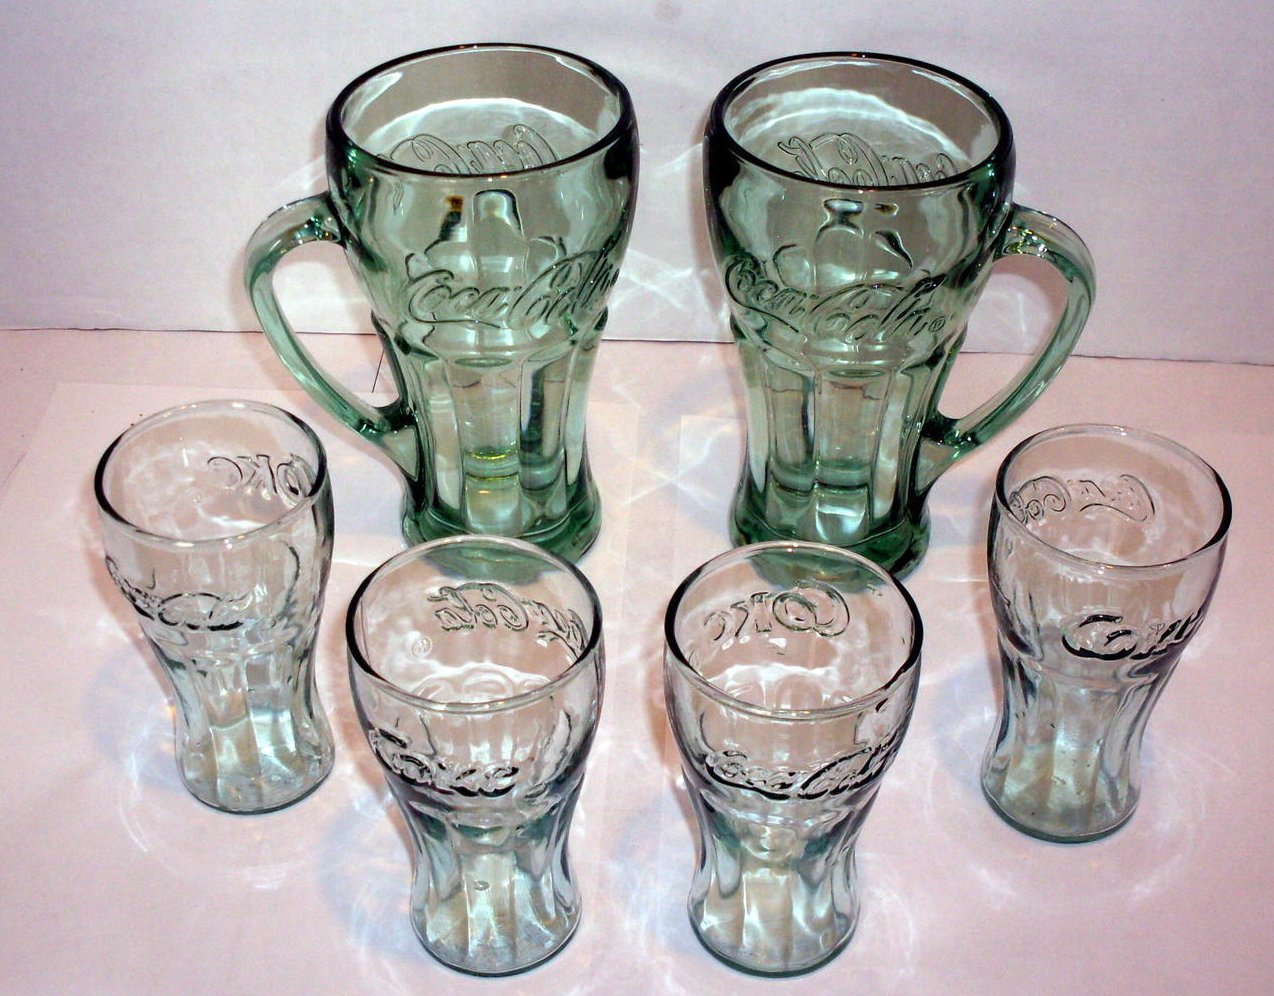 Image 0 of Coca Cola Mugs and Juice glasses Lot of 6